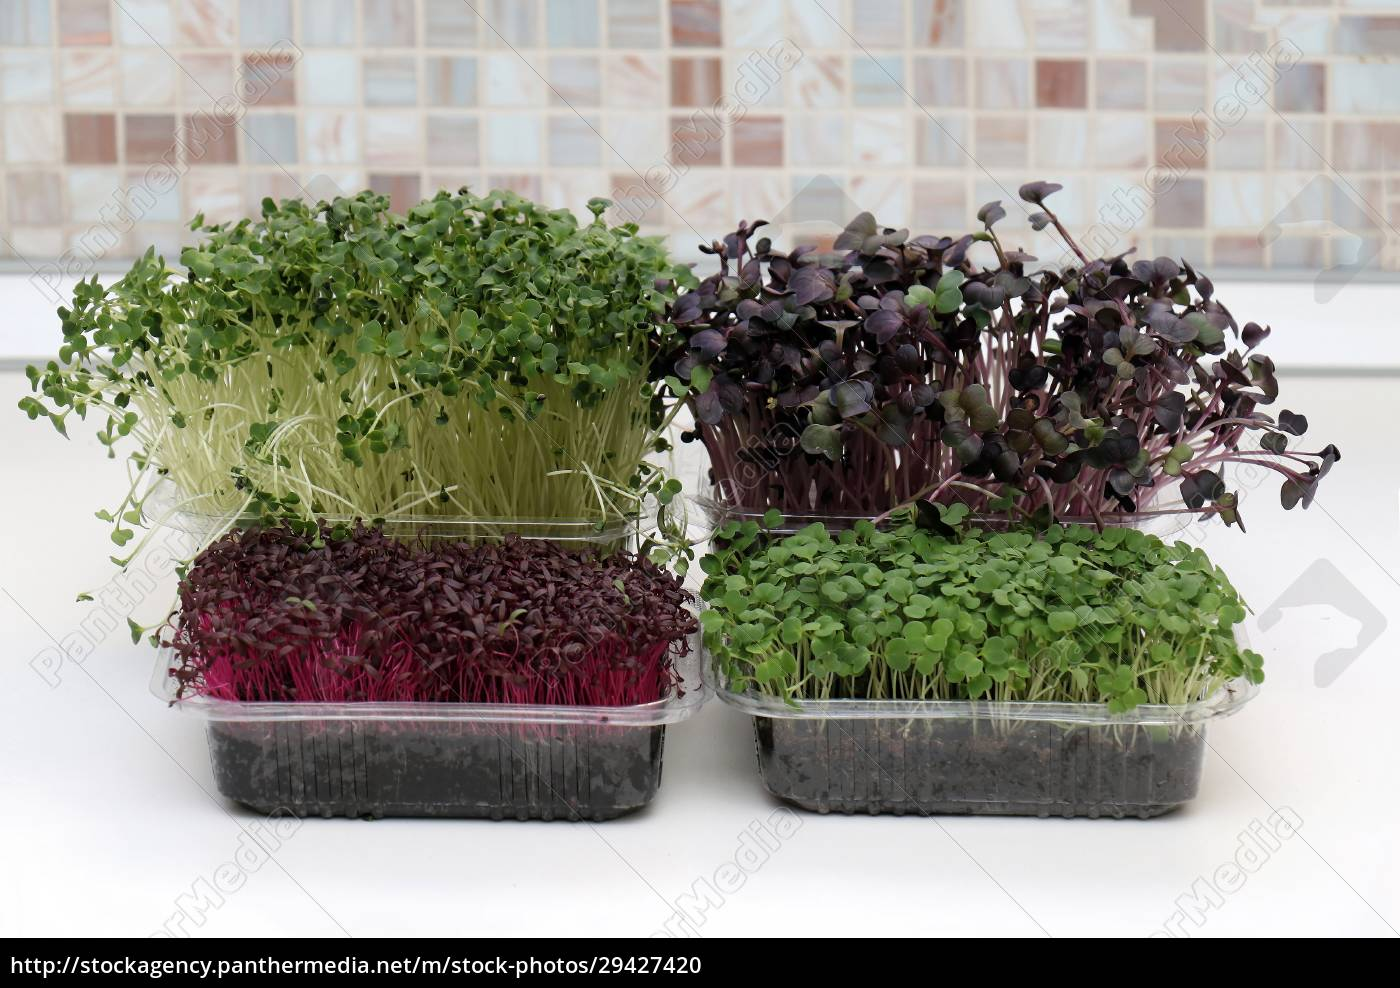 plastic, containers, with, microrgreens, plants - 29427420